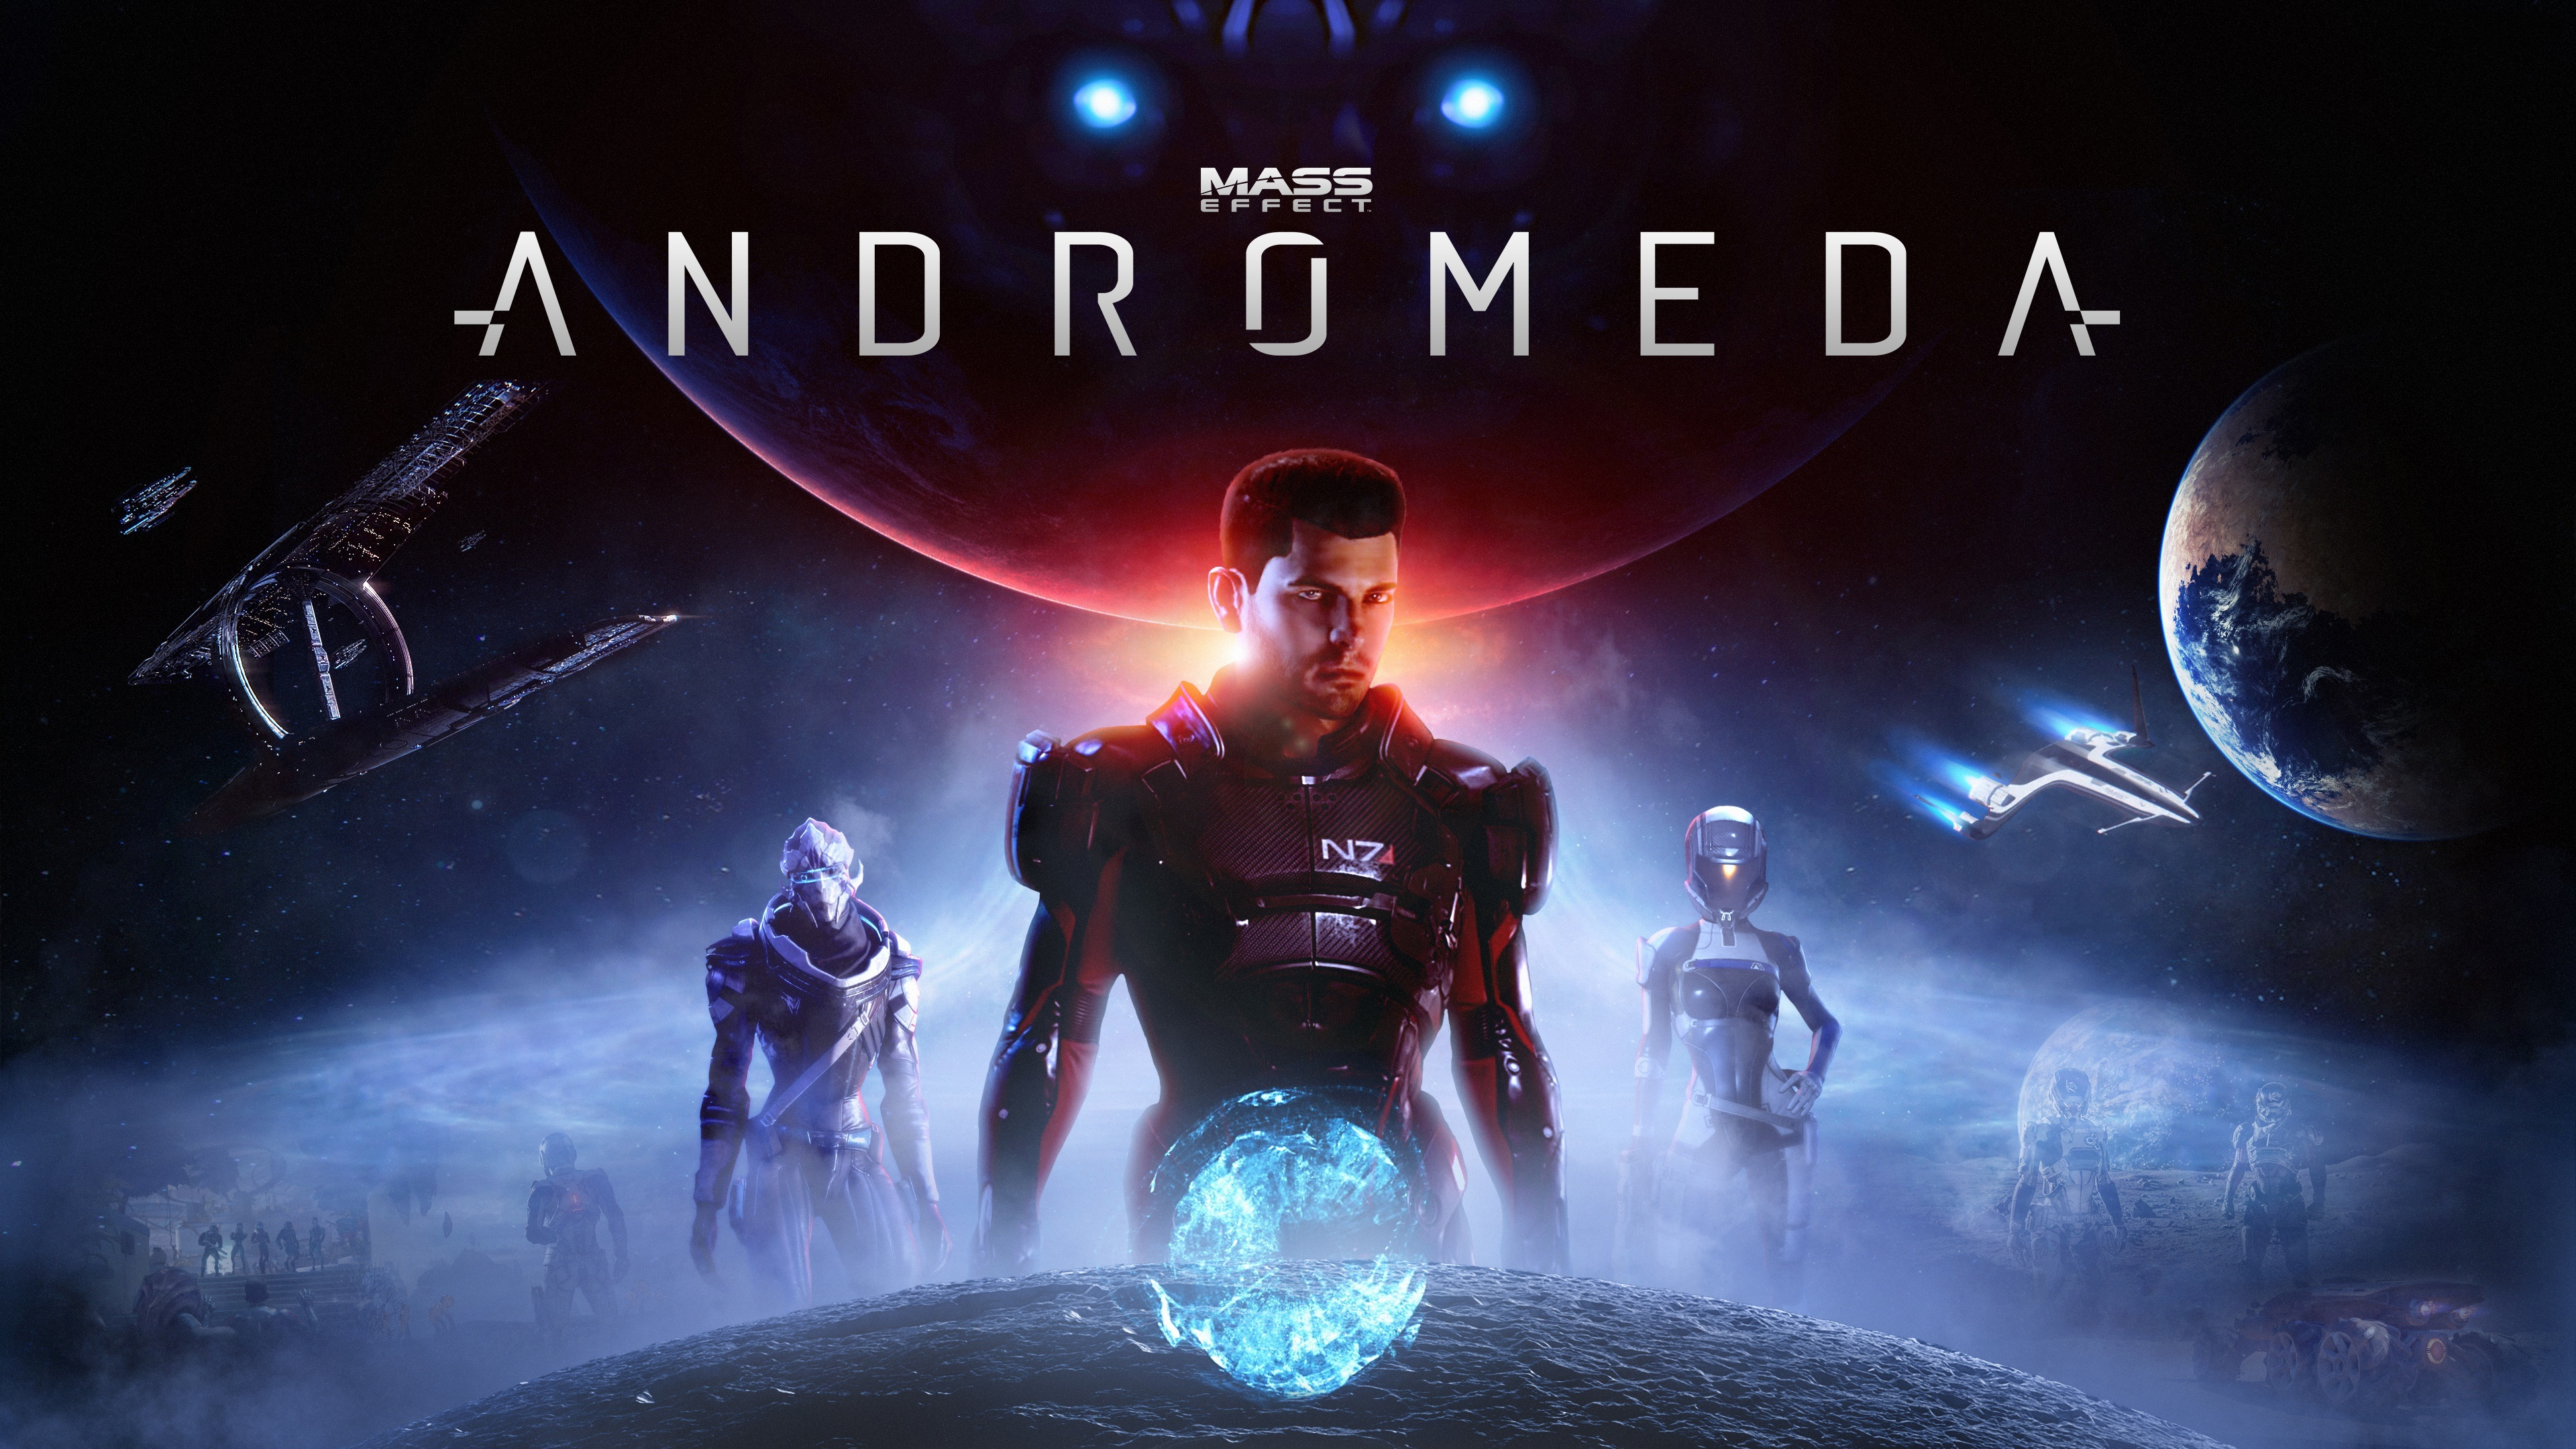 Wallpaper Mass Effect Andromeda Action Role Playing Game